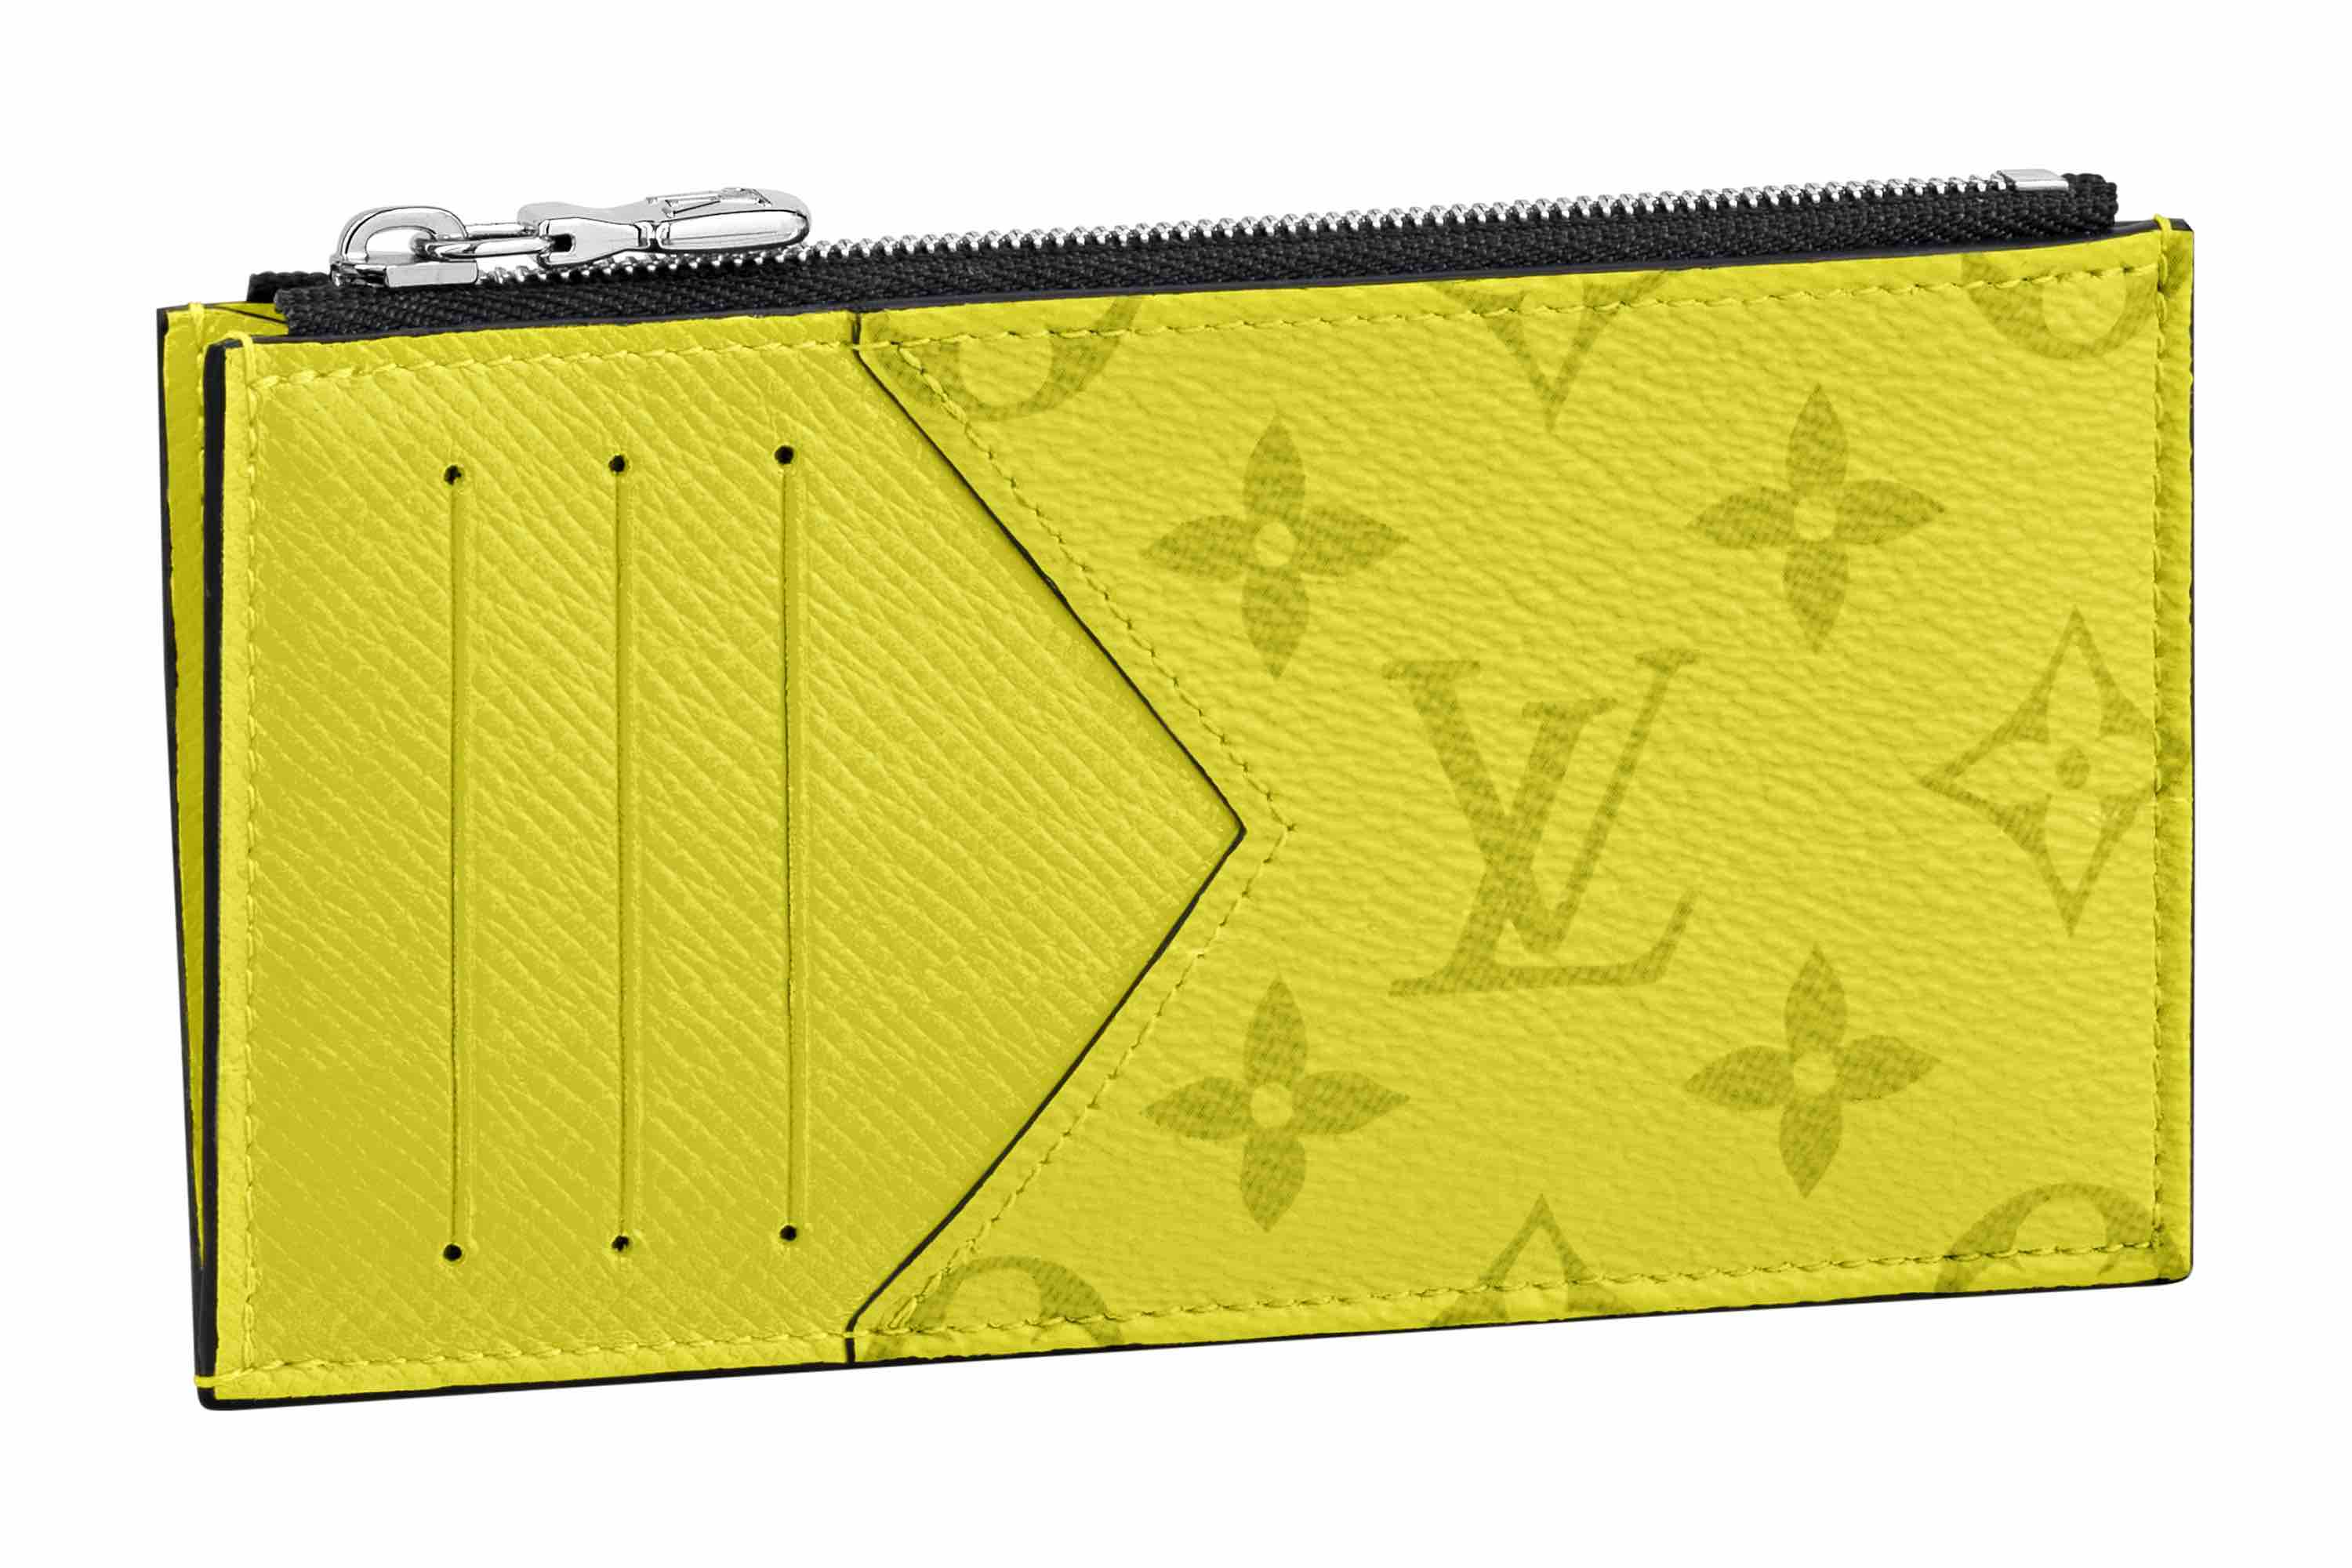 Louis Vuitton Taigarama Collection yellow card holder accessory